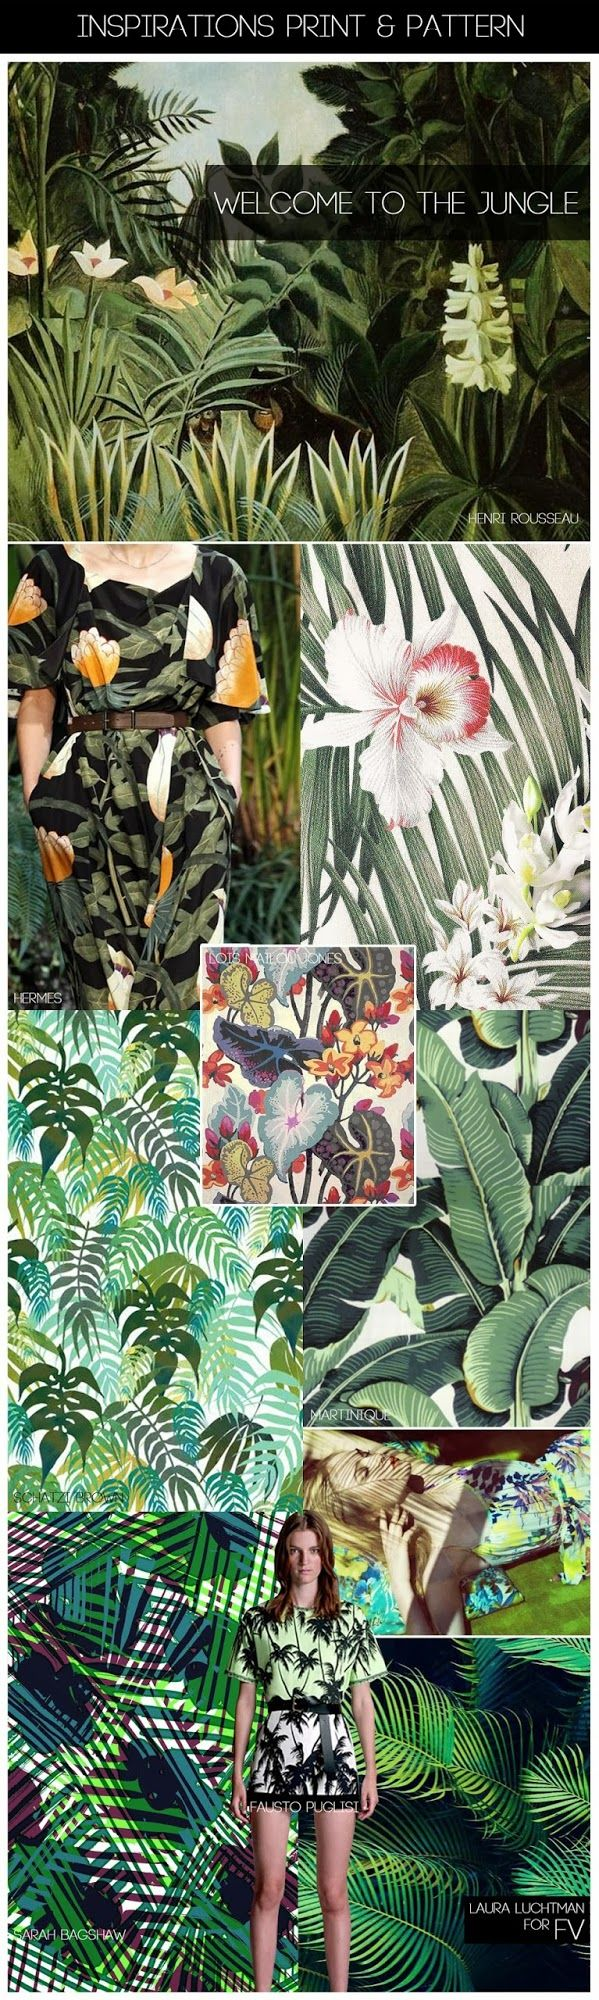 [ INSPIRATIONS PRINT + PATTERN ] SS 2015 WELCOME TO THE JUNGLE - FASHION VIGNETTE